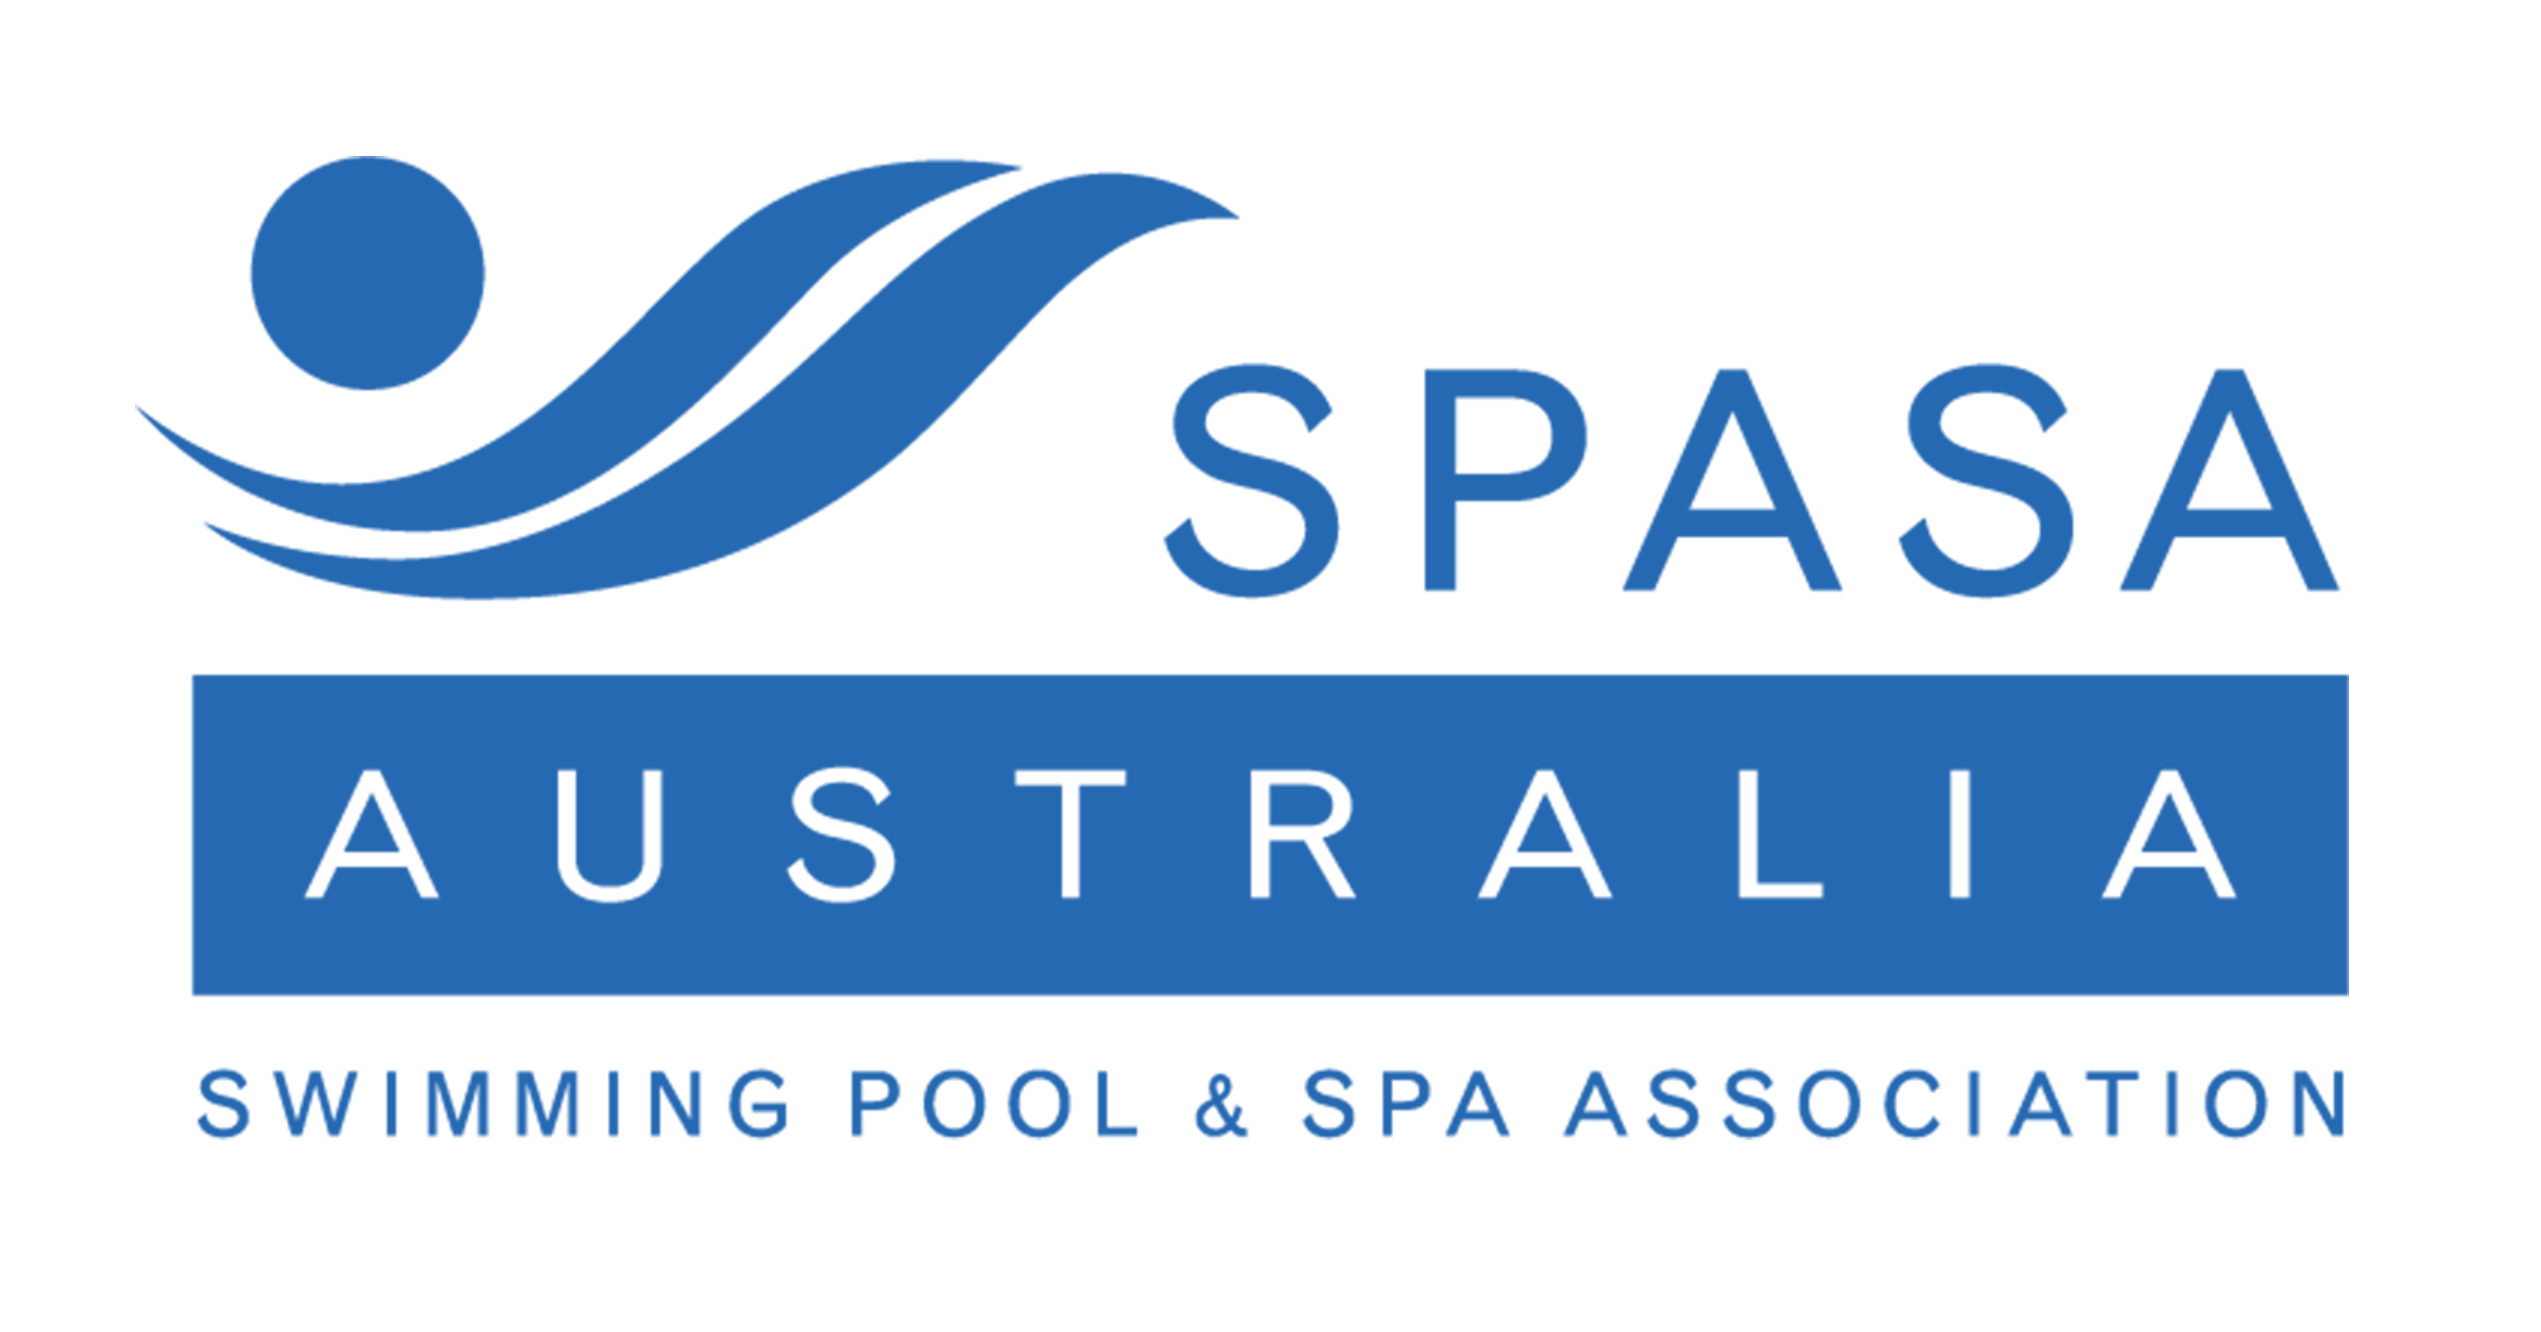 Swimming pool and spa association logo